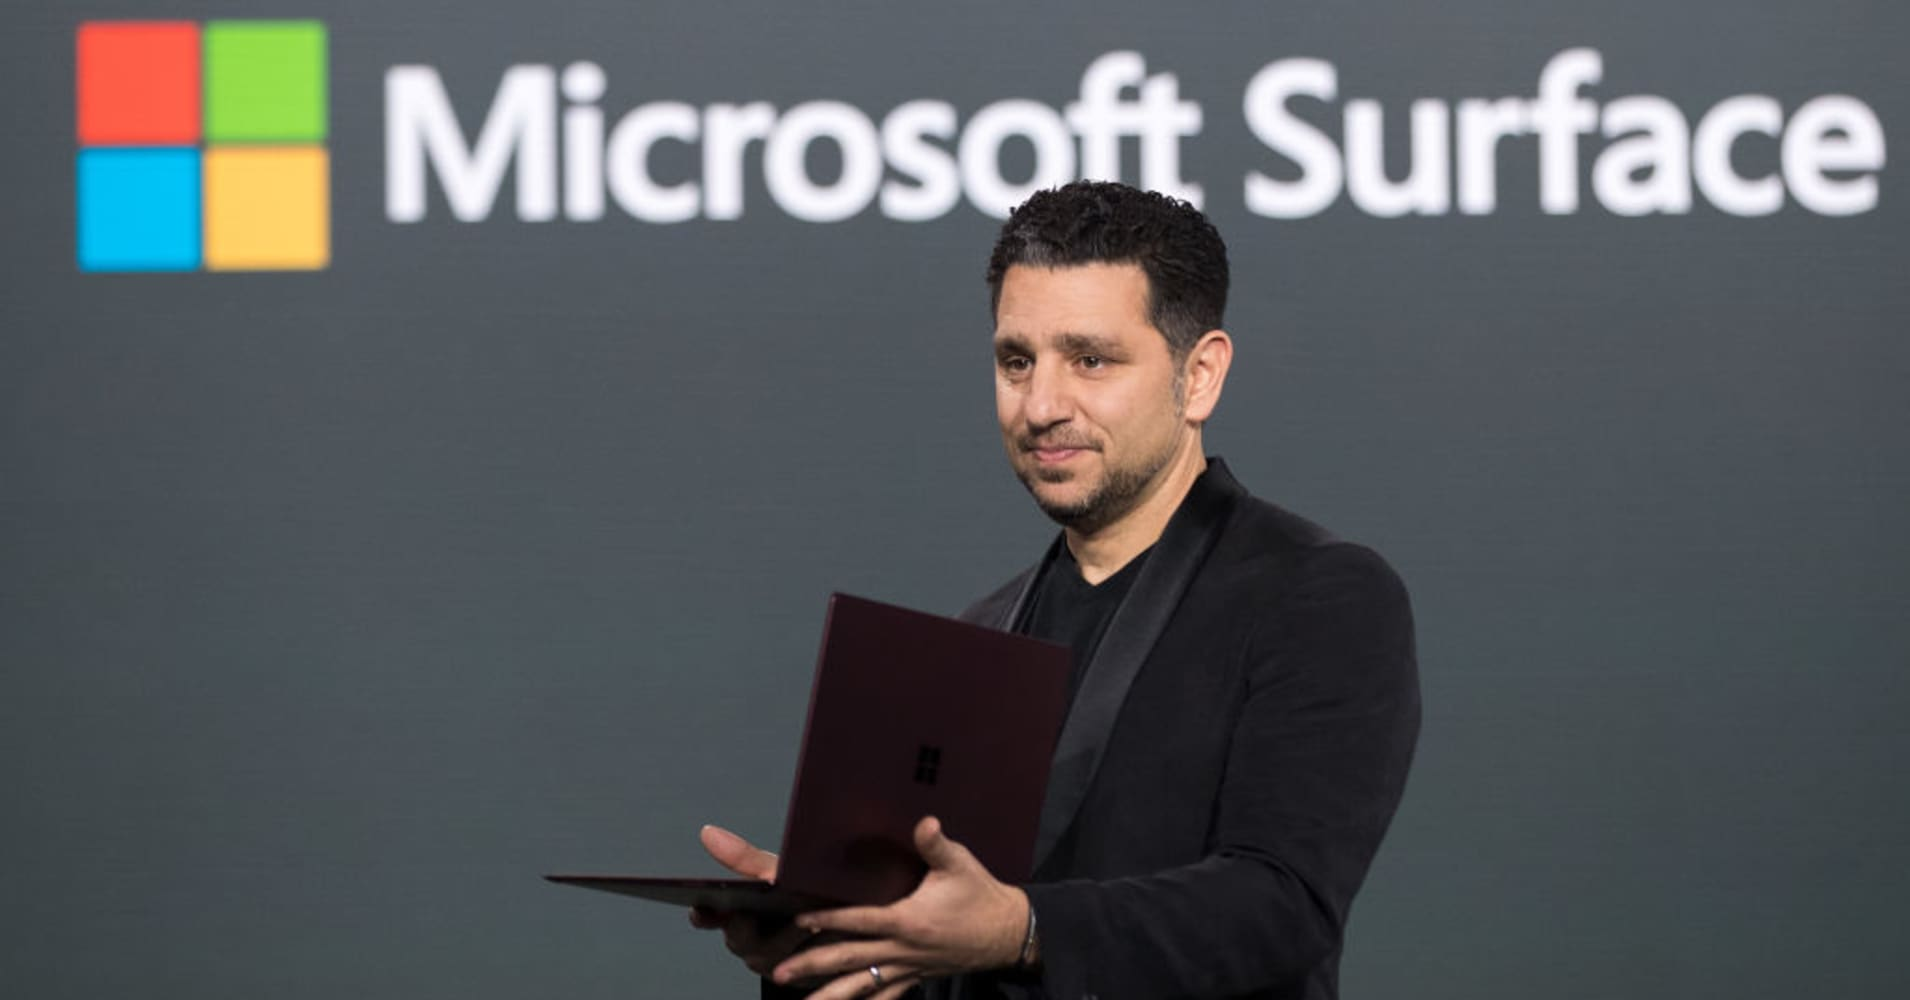 Panos Panay, corporate vice president of device at Microsoft, speaks about the new Surface Laptop during a launch event, May 2, 2017 in New York City.